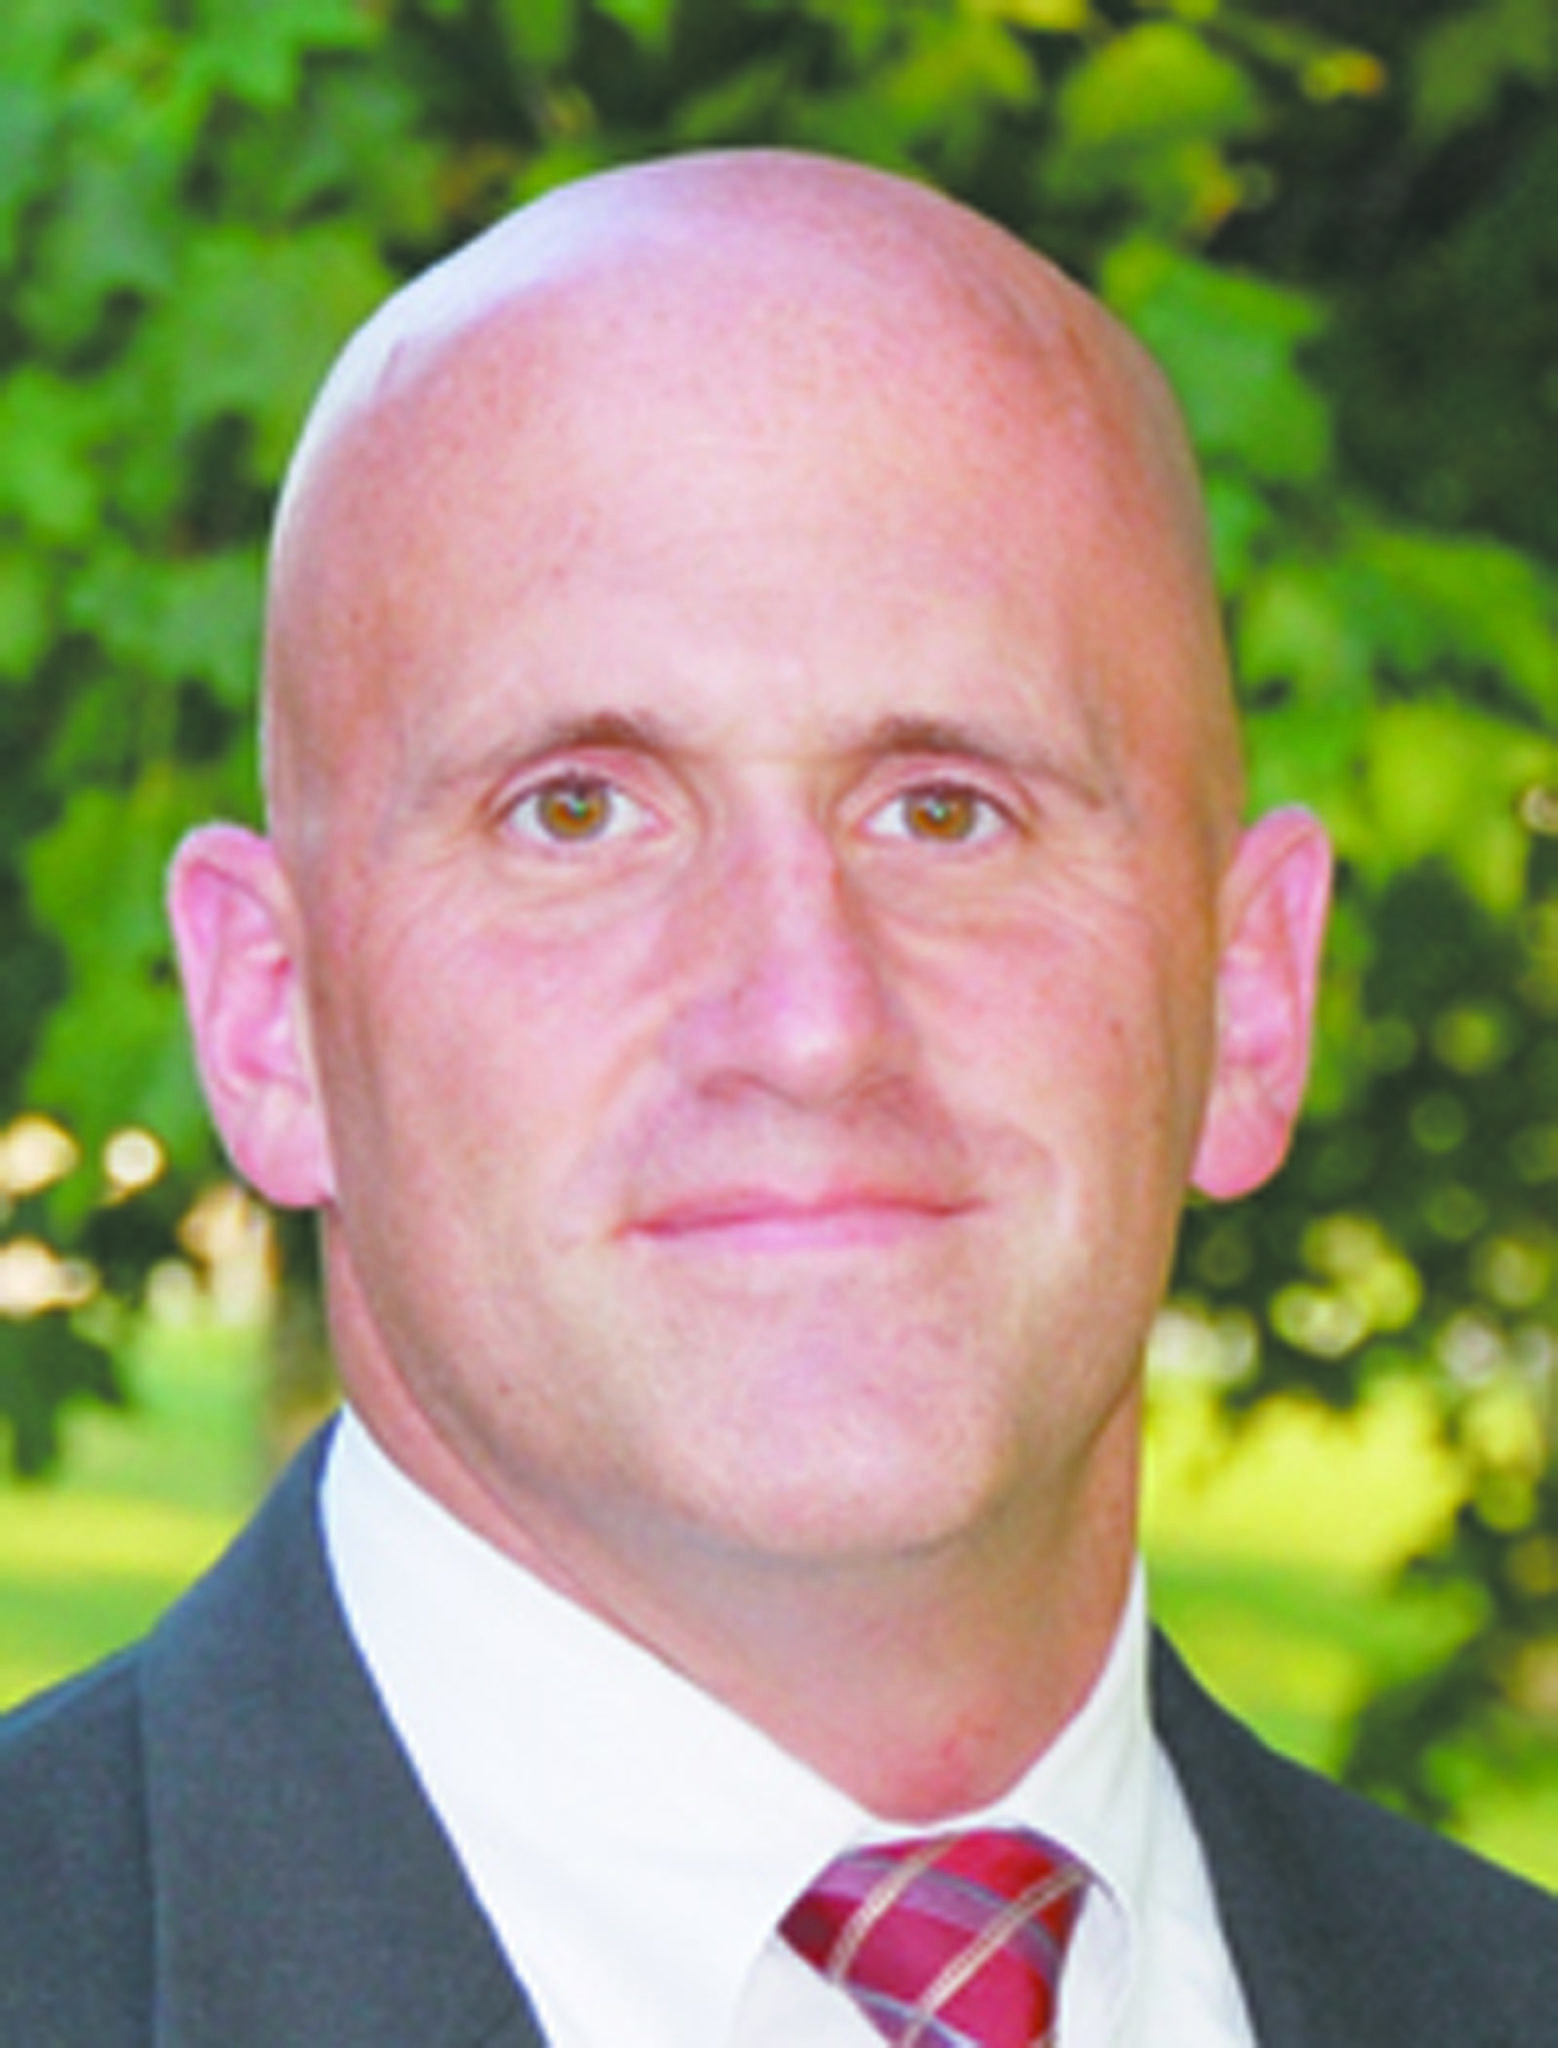 County legislator Brian May seeks re-election